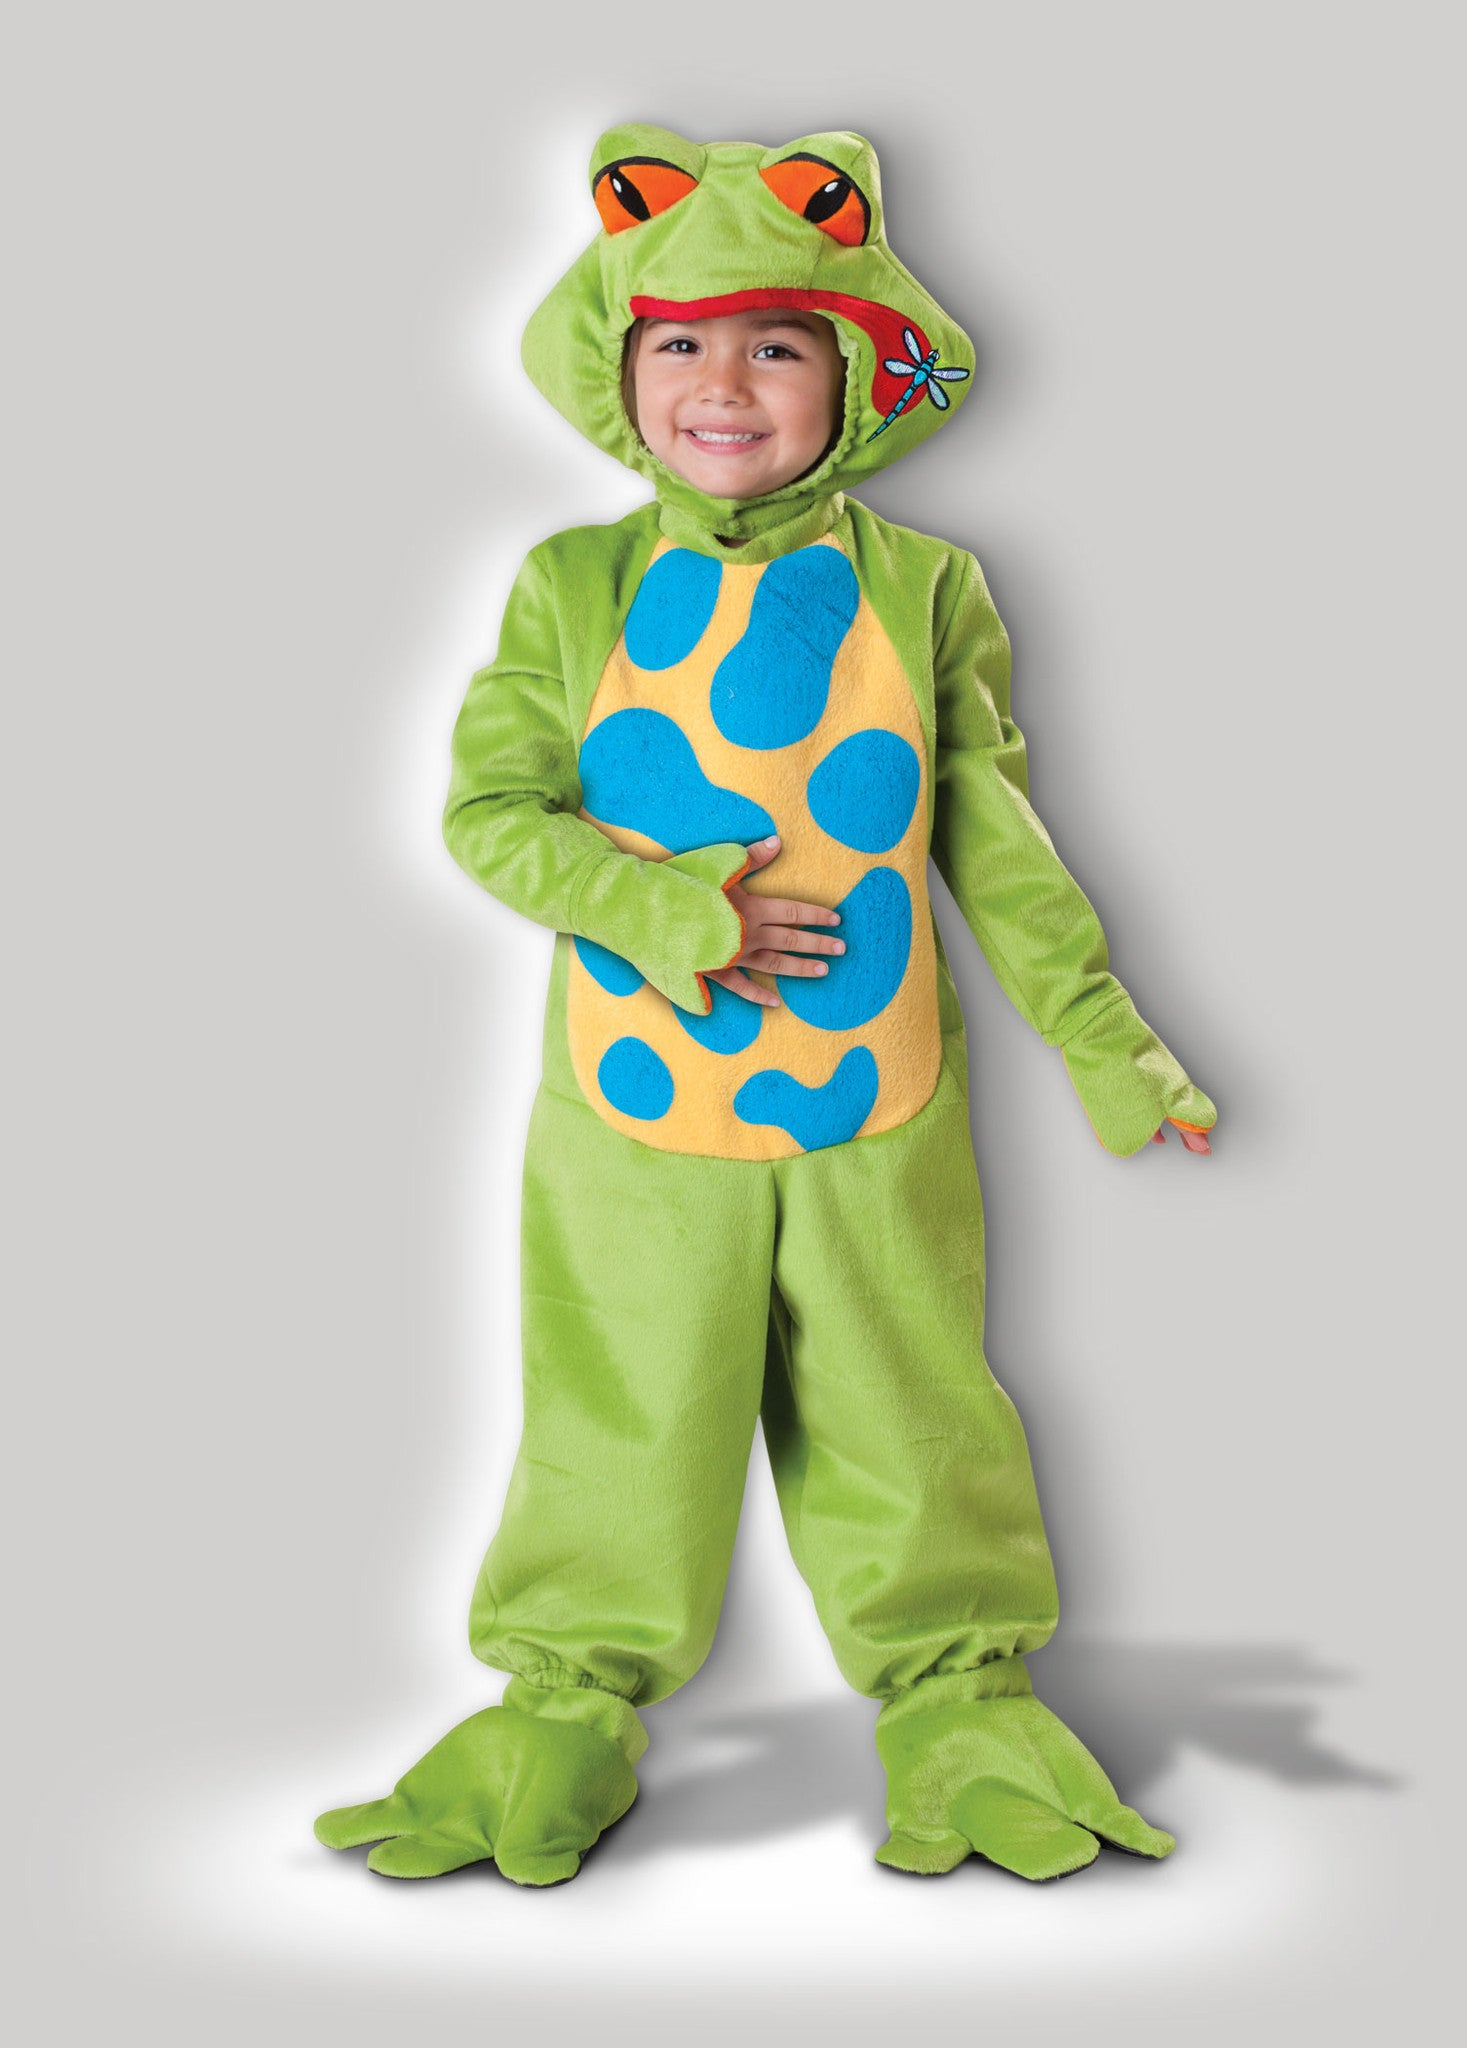 Lilu0027 Froggy CN7513  sc 1 st  InCharacter Costumes & Deluxe Toddler Halloween Costumes by InCharacter Costumes